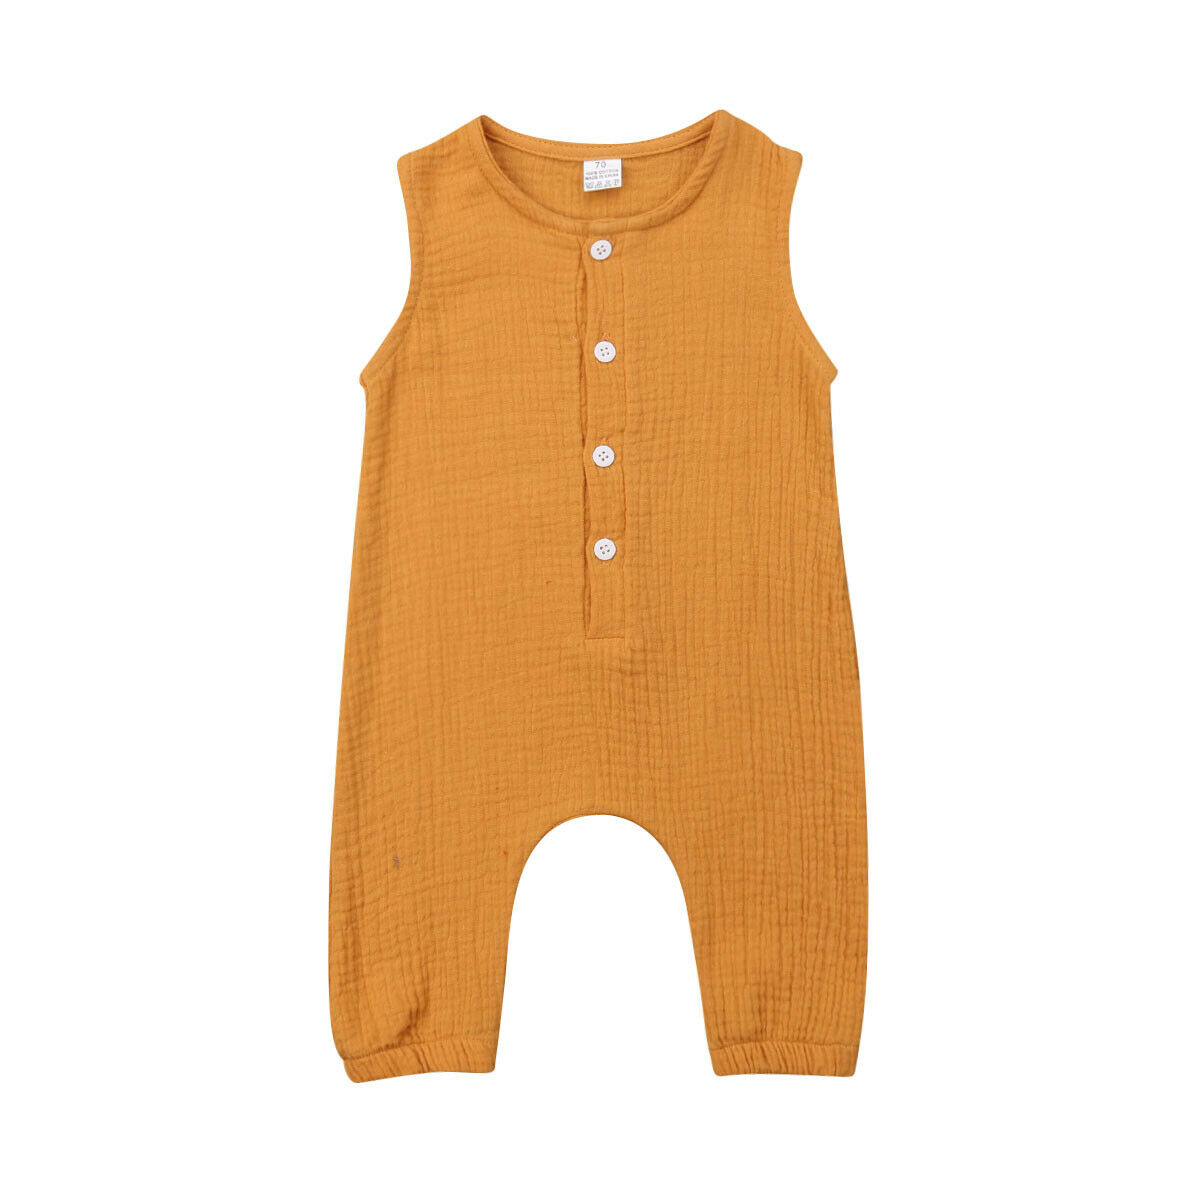 2019 Newest Style Newborn Infant Toddler Baby Girl Boy Spring Summer Adorable Romper Jumpsuit Outfits Clothes 0-18months